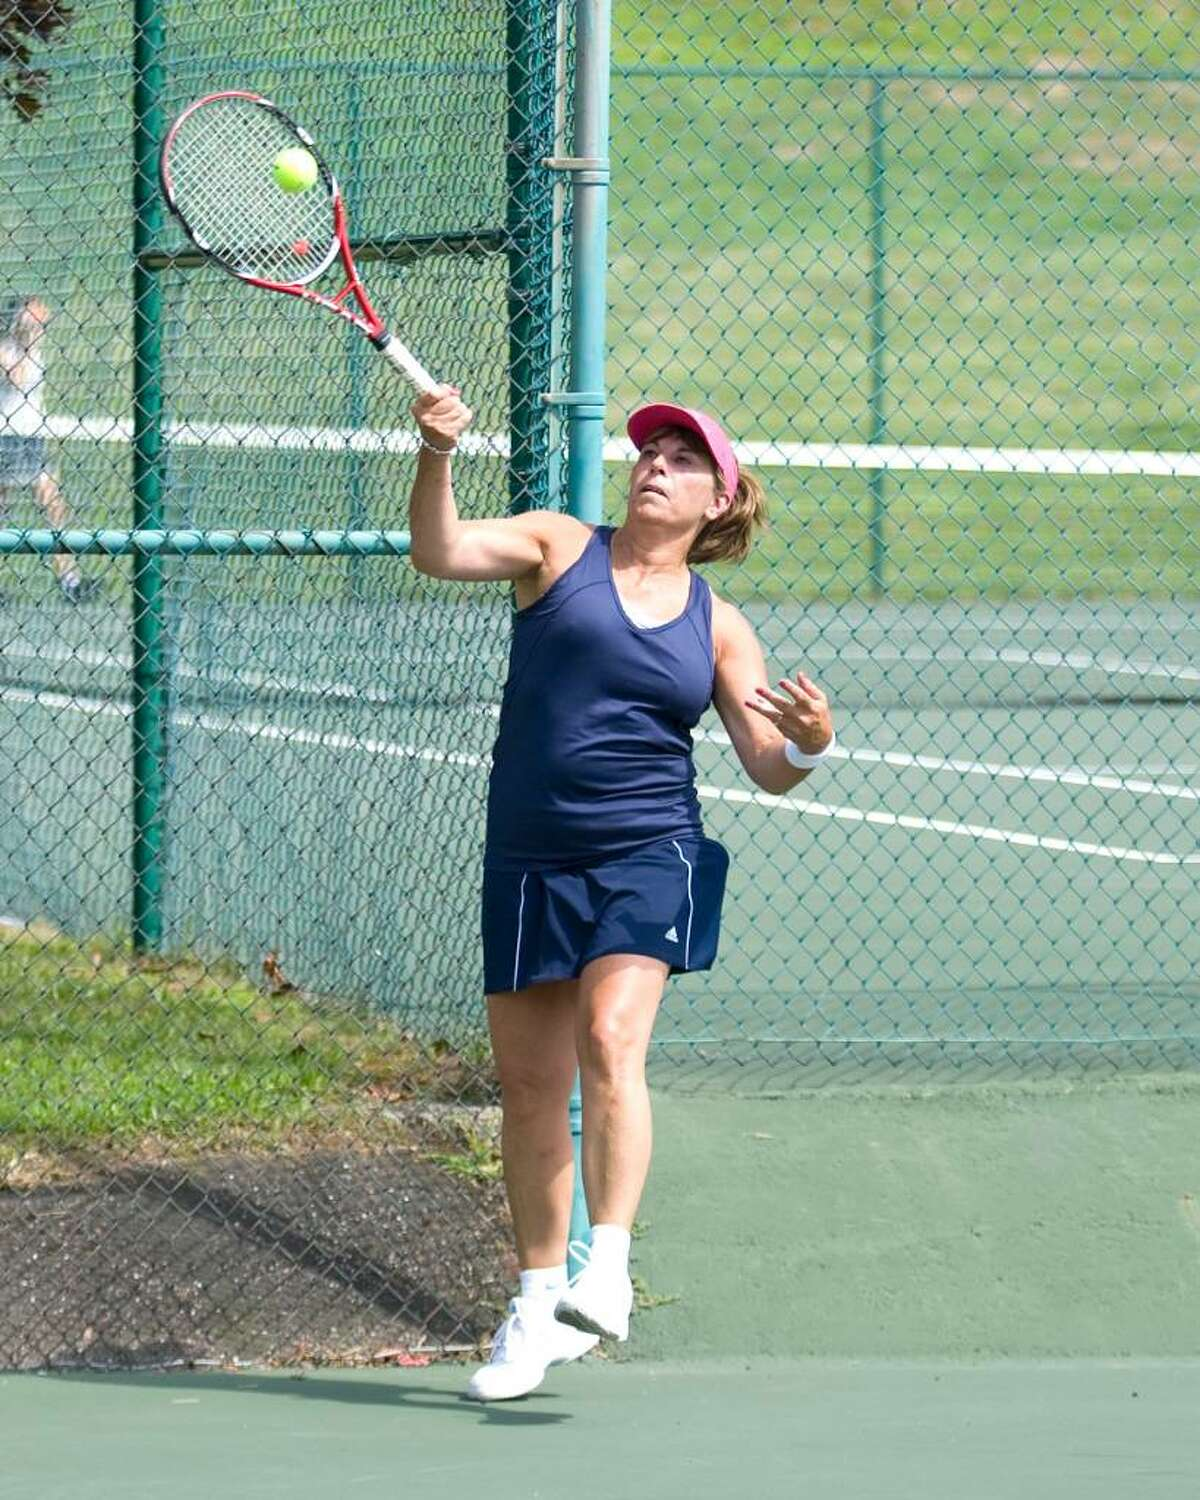 Sandra Atanasoff of Danbury hits a forehand return in her match against Cecily Koss of Southport during first round play in the Danbury Open Tennis Tournament Saturday at Wooster School in Danbury.